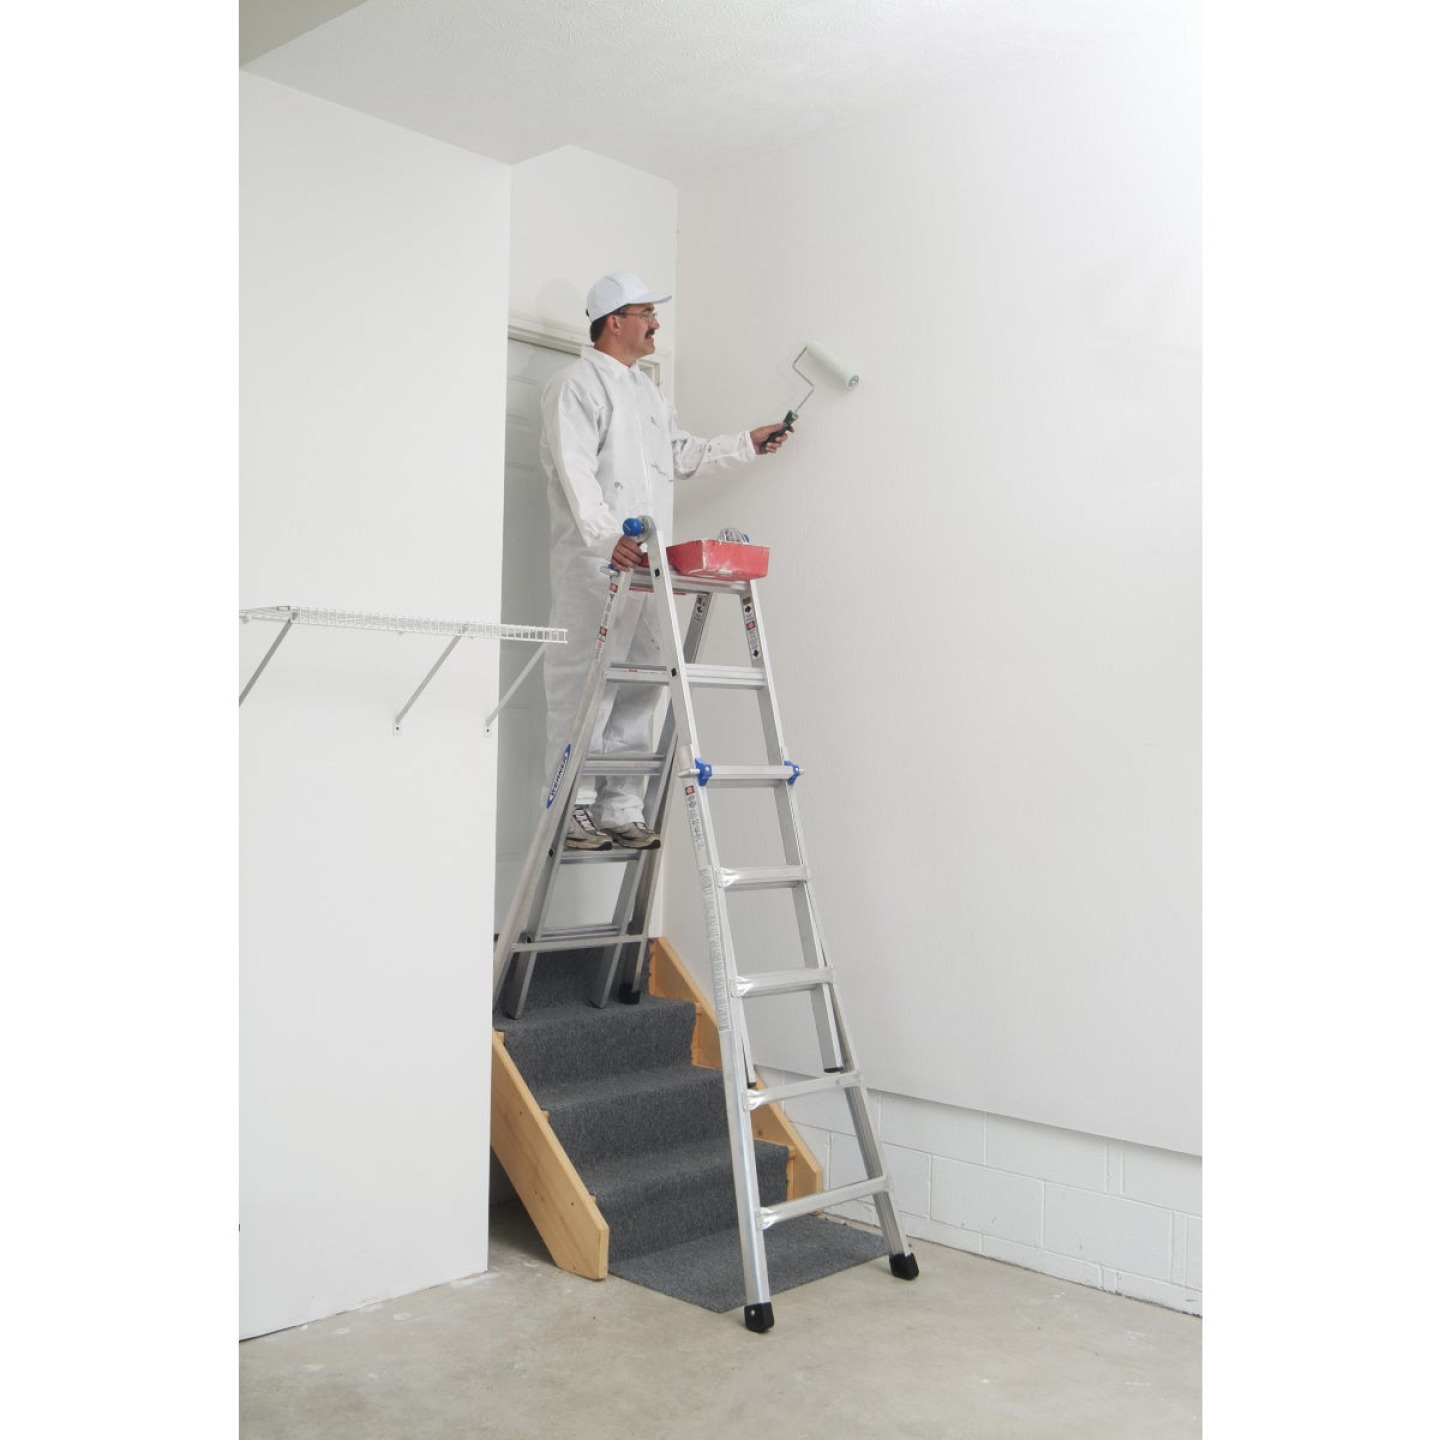 Werner 22 Ft. Aluminum Multi-Position Telescoping Ladder with 300 Lb. Load Capacity Type IA Ladder Rating Image 3